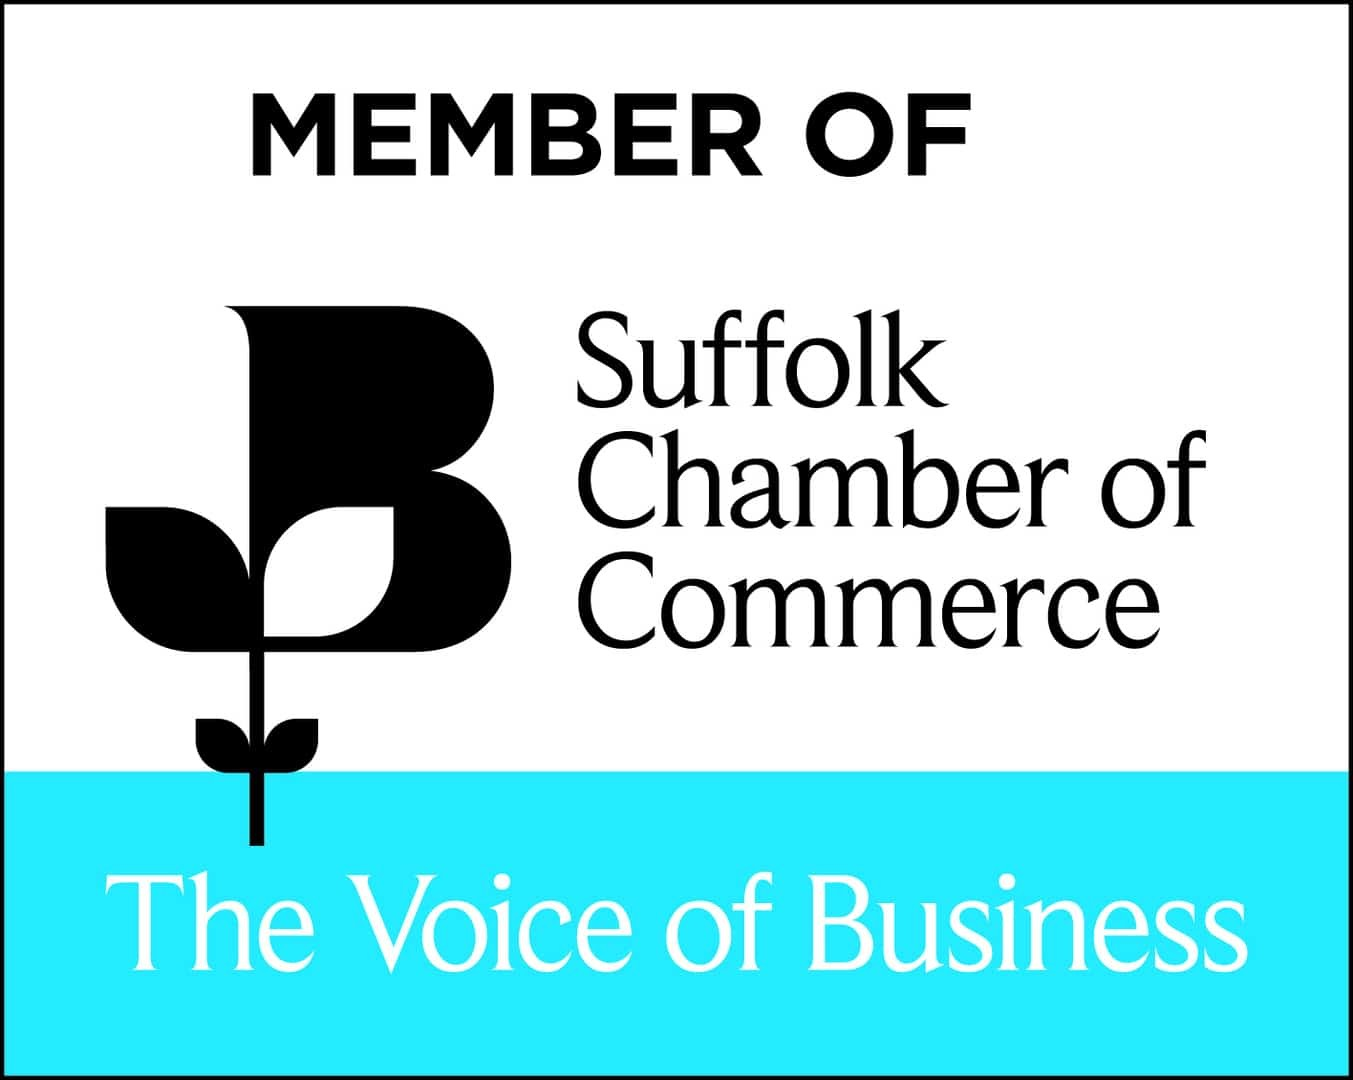 Member of Suffolk Chamber of Commerce - Special Offers